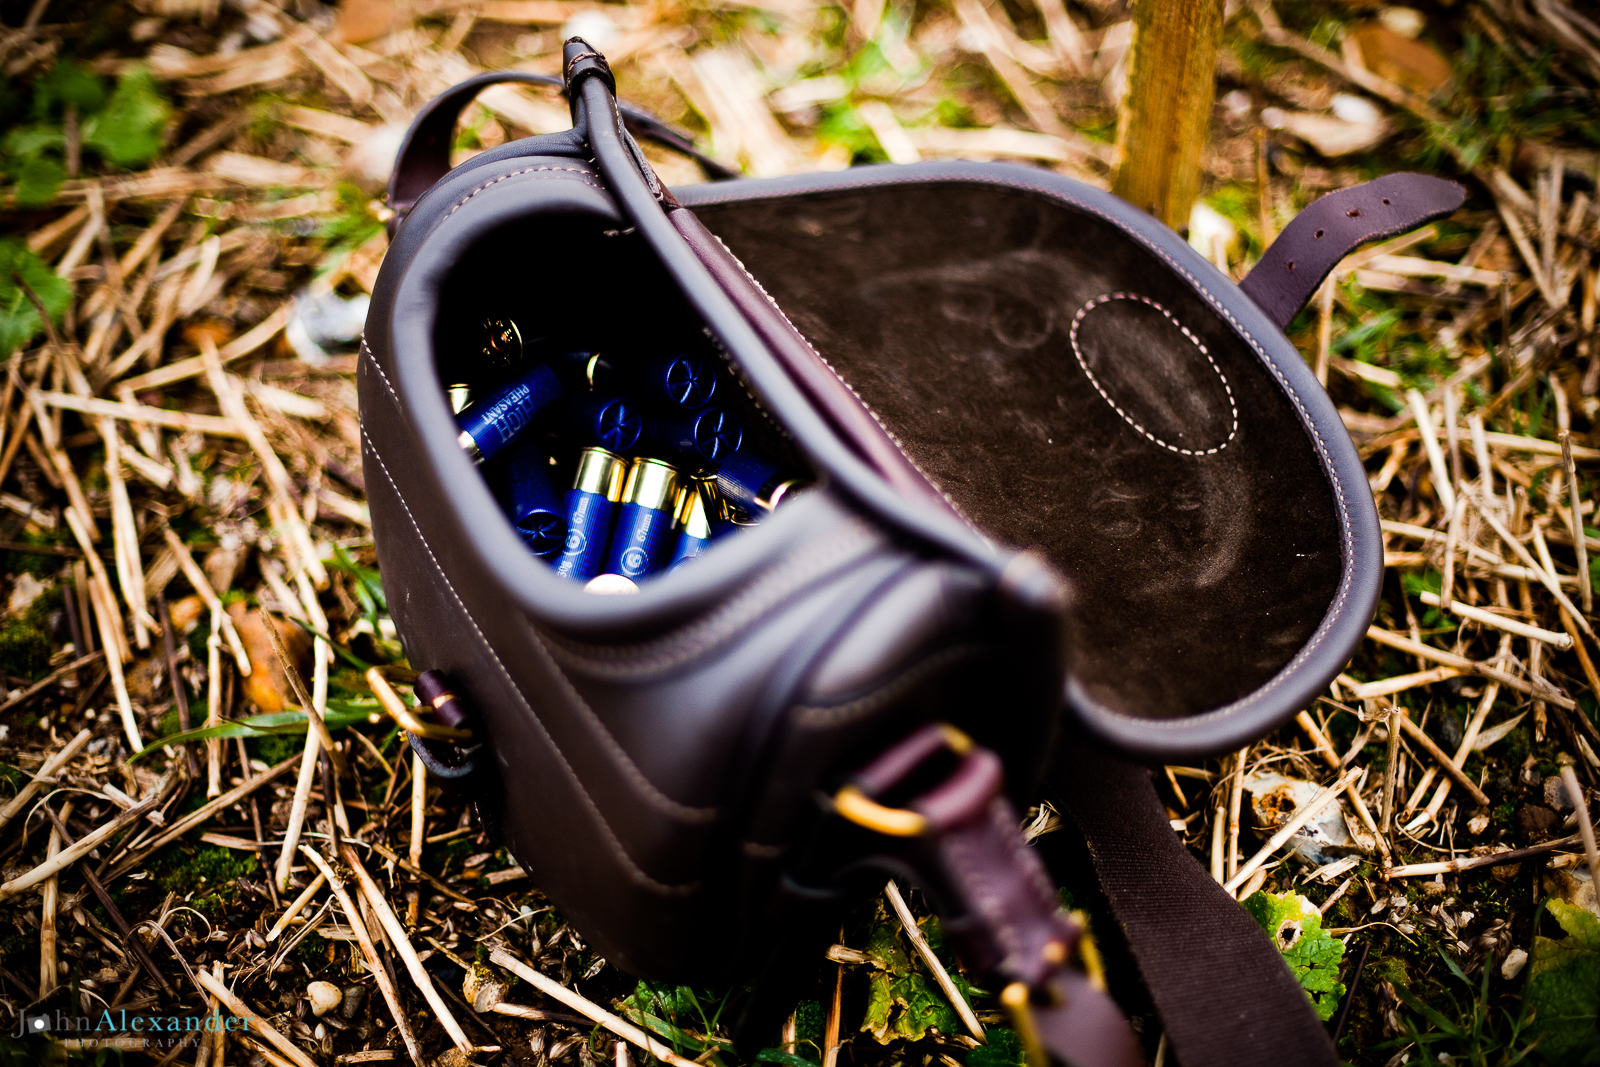 Brown leather shotgun cartridge loader bag. Filled with blue cartridges, on the ground